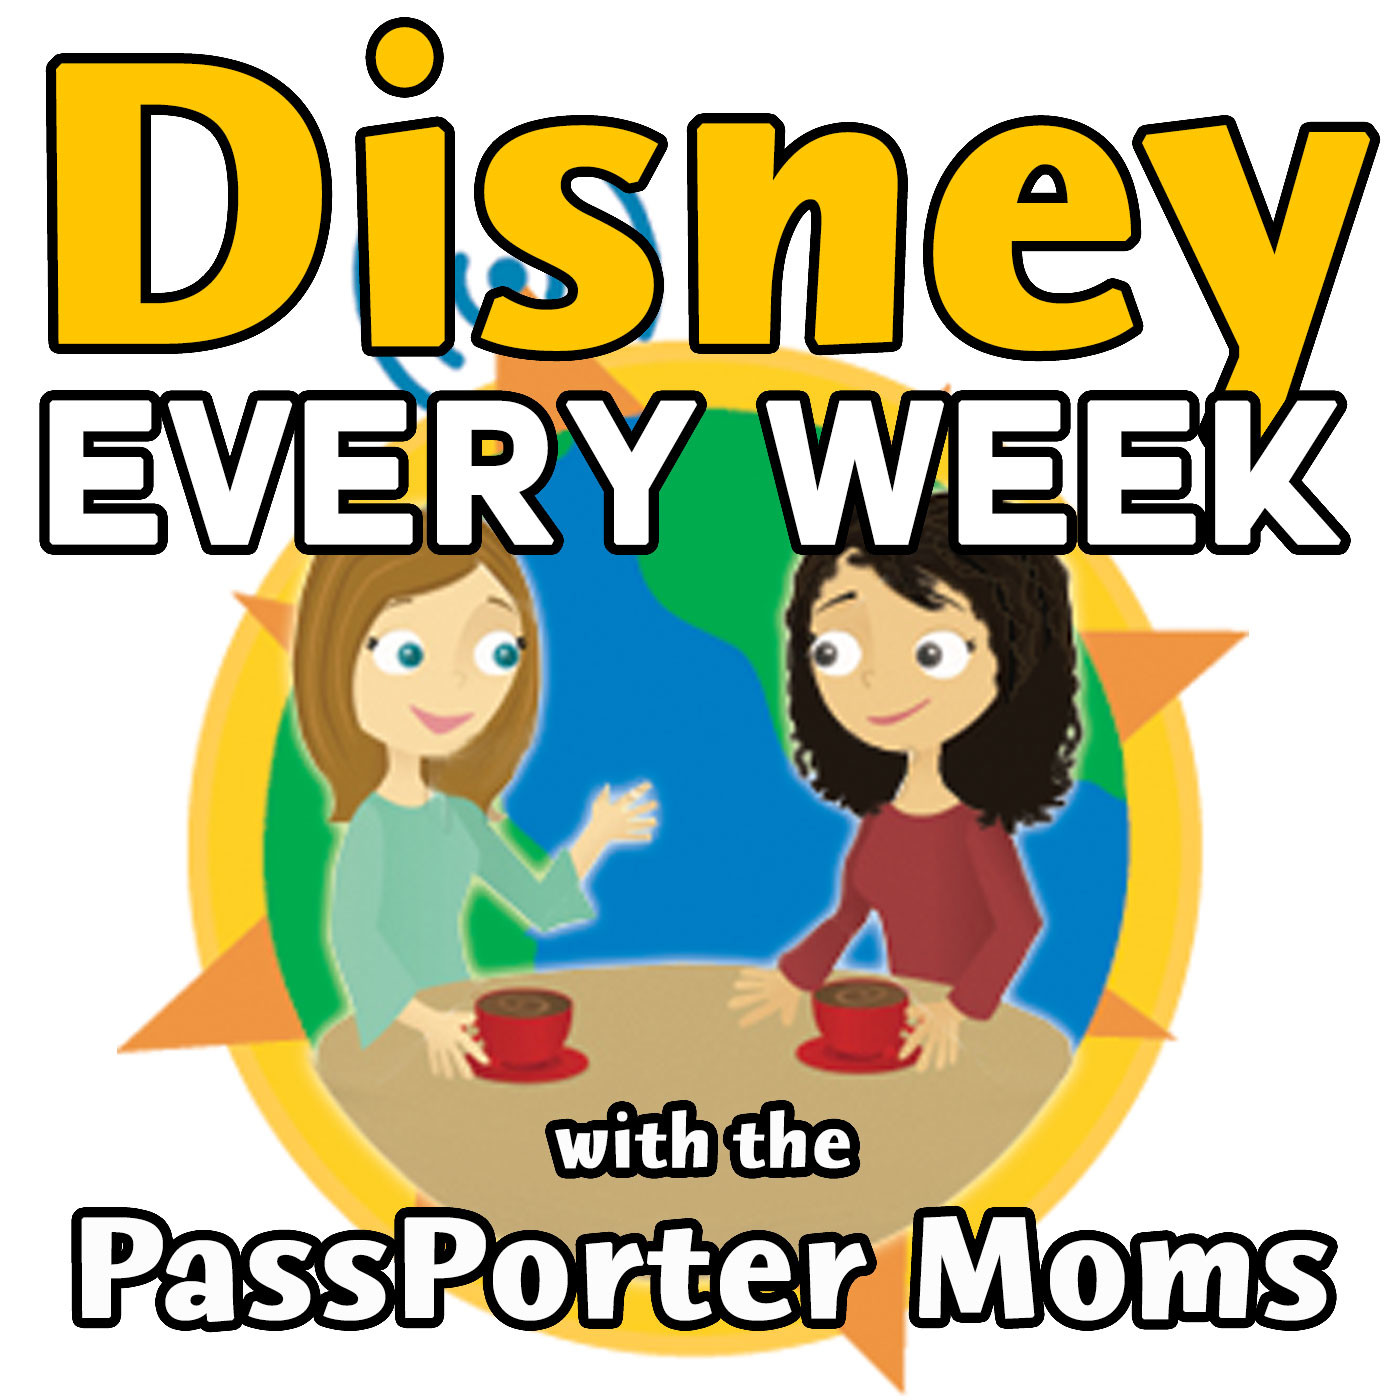 Disney Cruise Line with Disney Parks Moms Panelist Doug Ingersoll (Episode #262 - 1/21/2015)